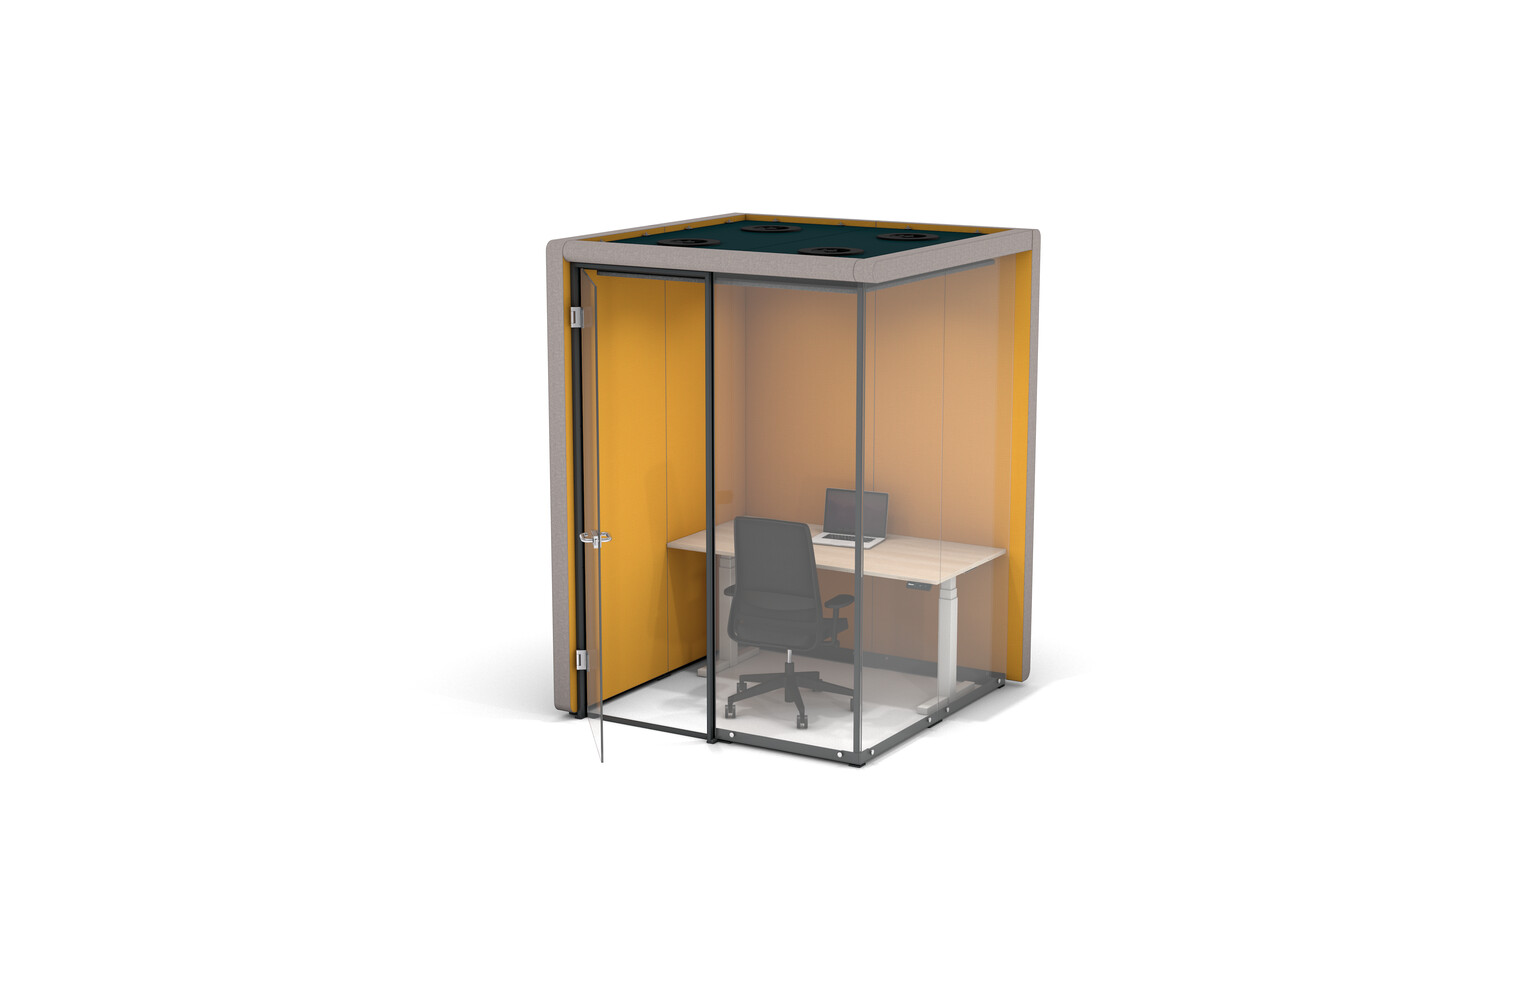 Gispen MOXX space in space 2 by 2 panels upholstered in grey and yellow with swivel door and white TMNL desk and Zinn office chair front right view